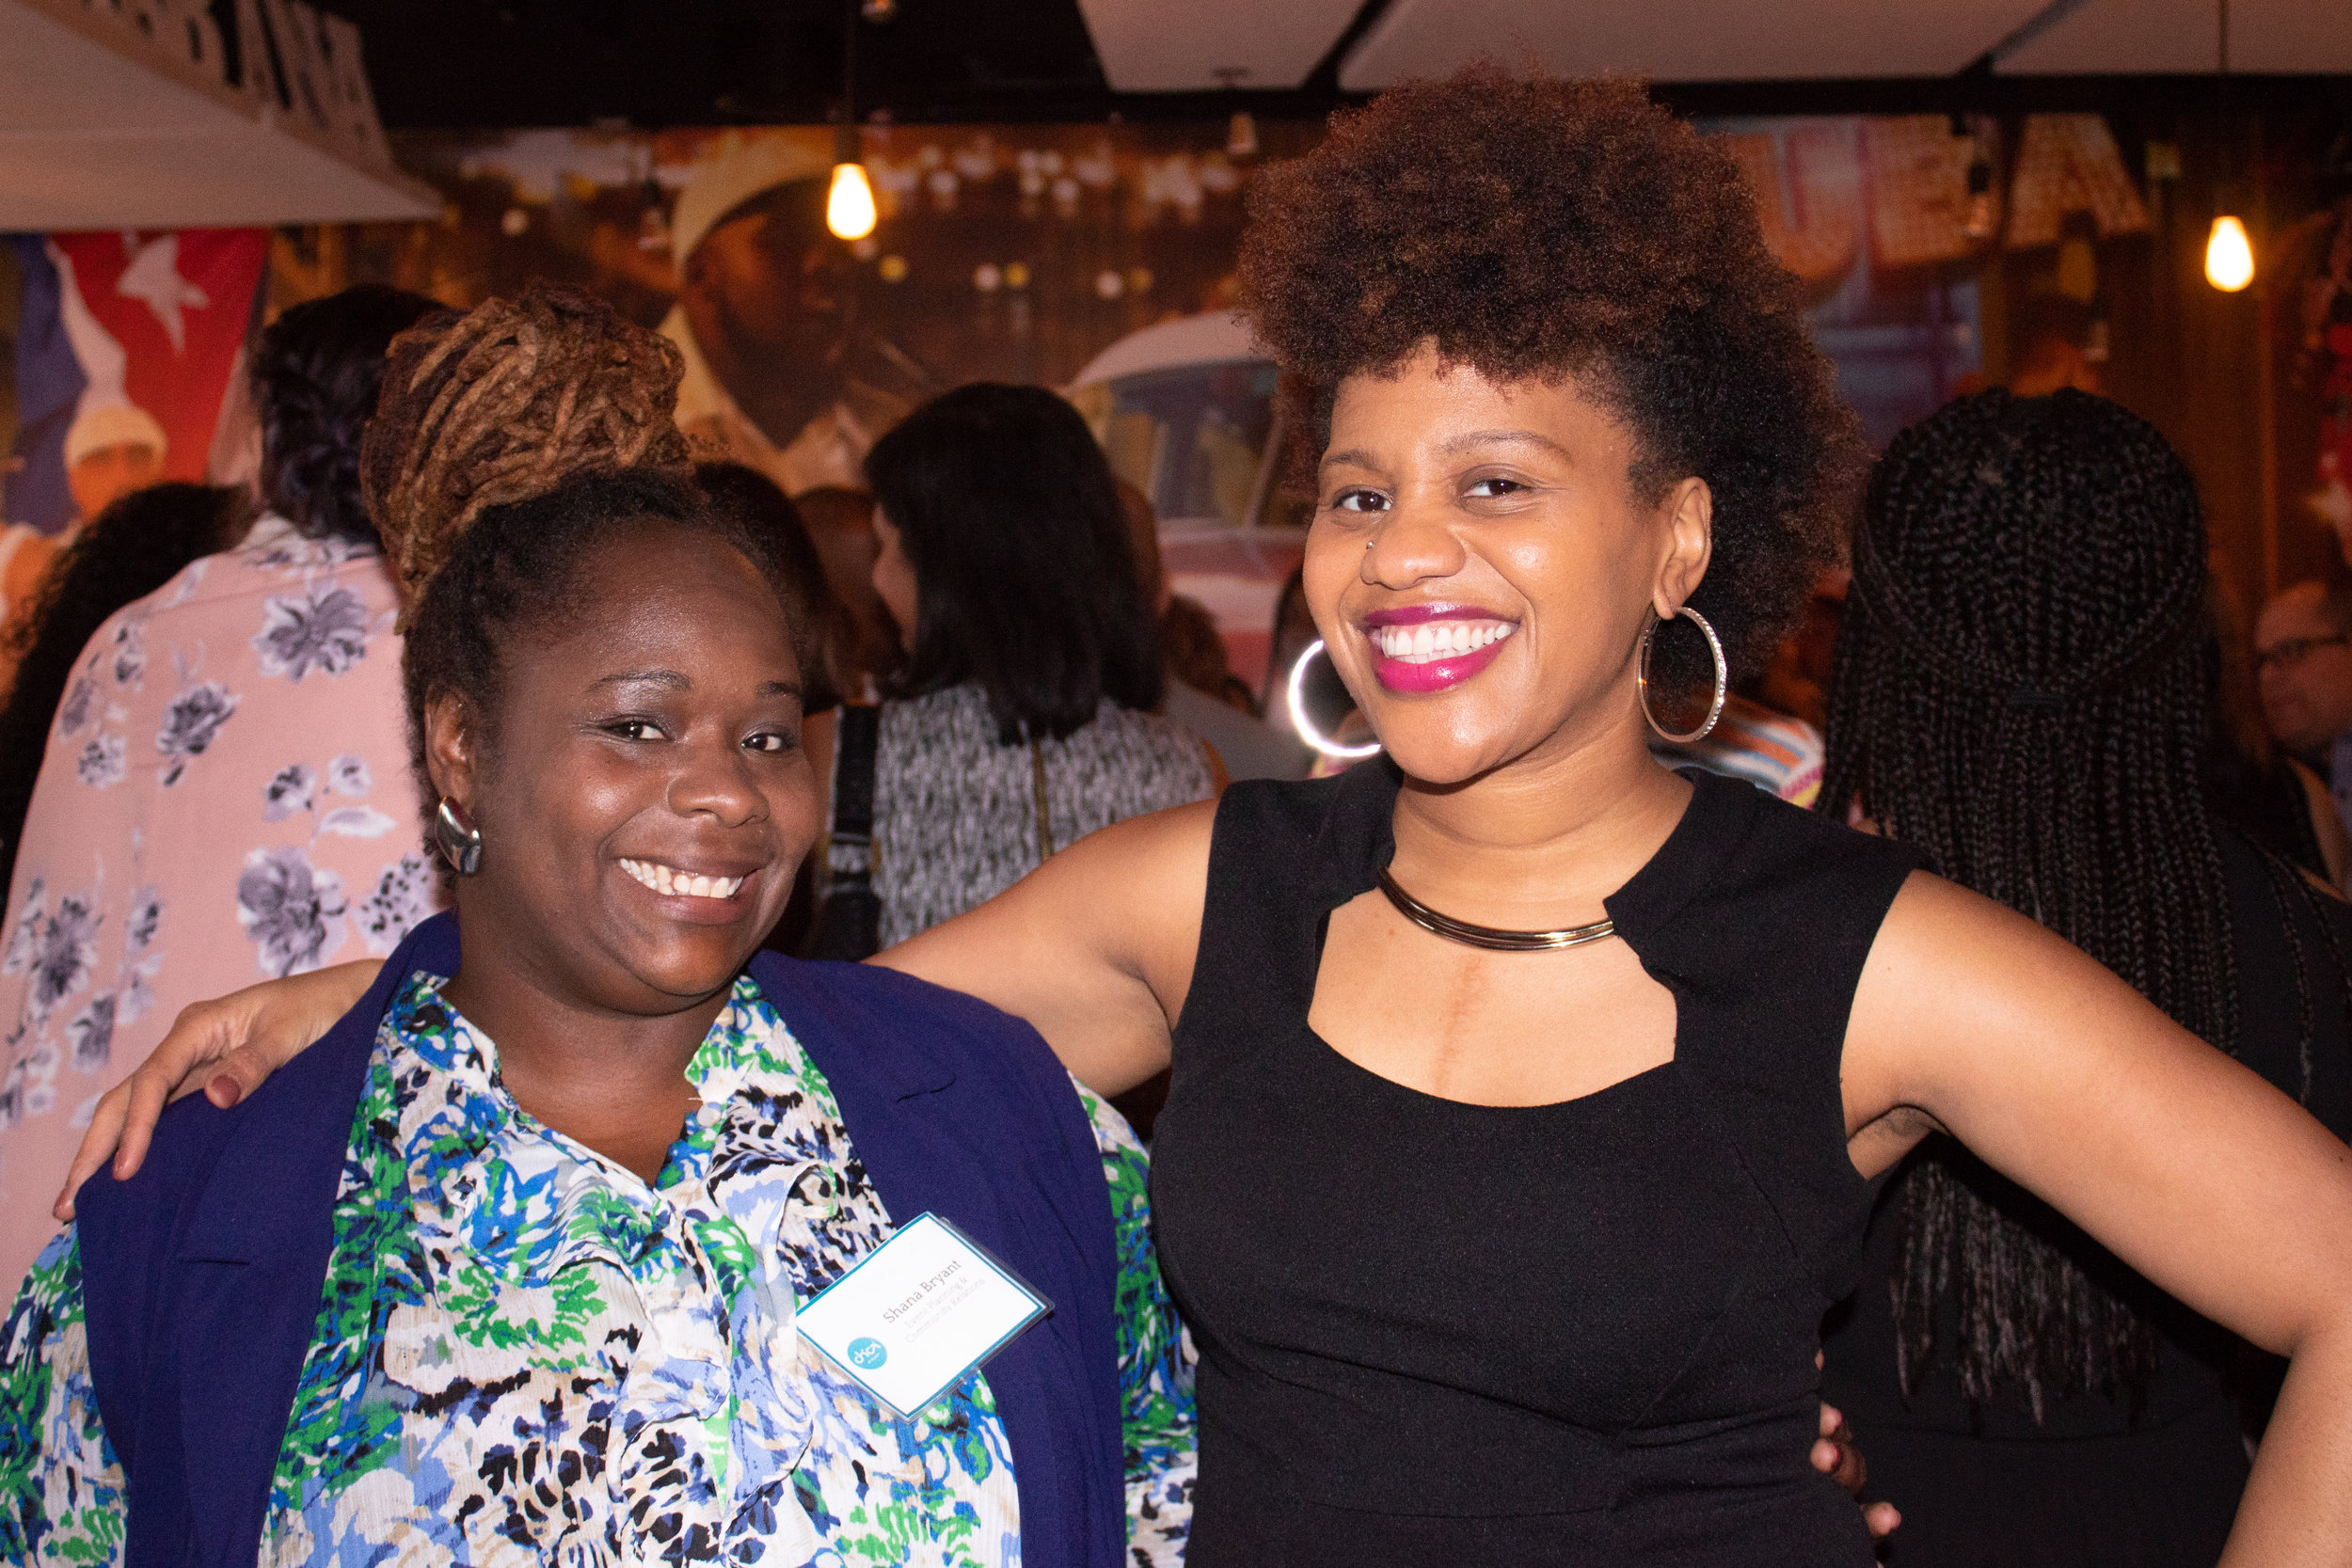 Shana Bryant (left) and Sheena Collier of The Collier Connection.